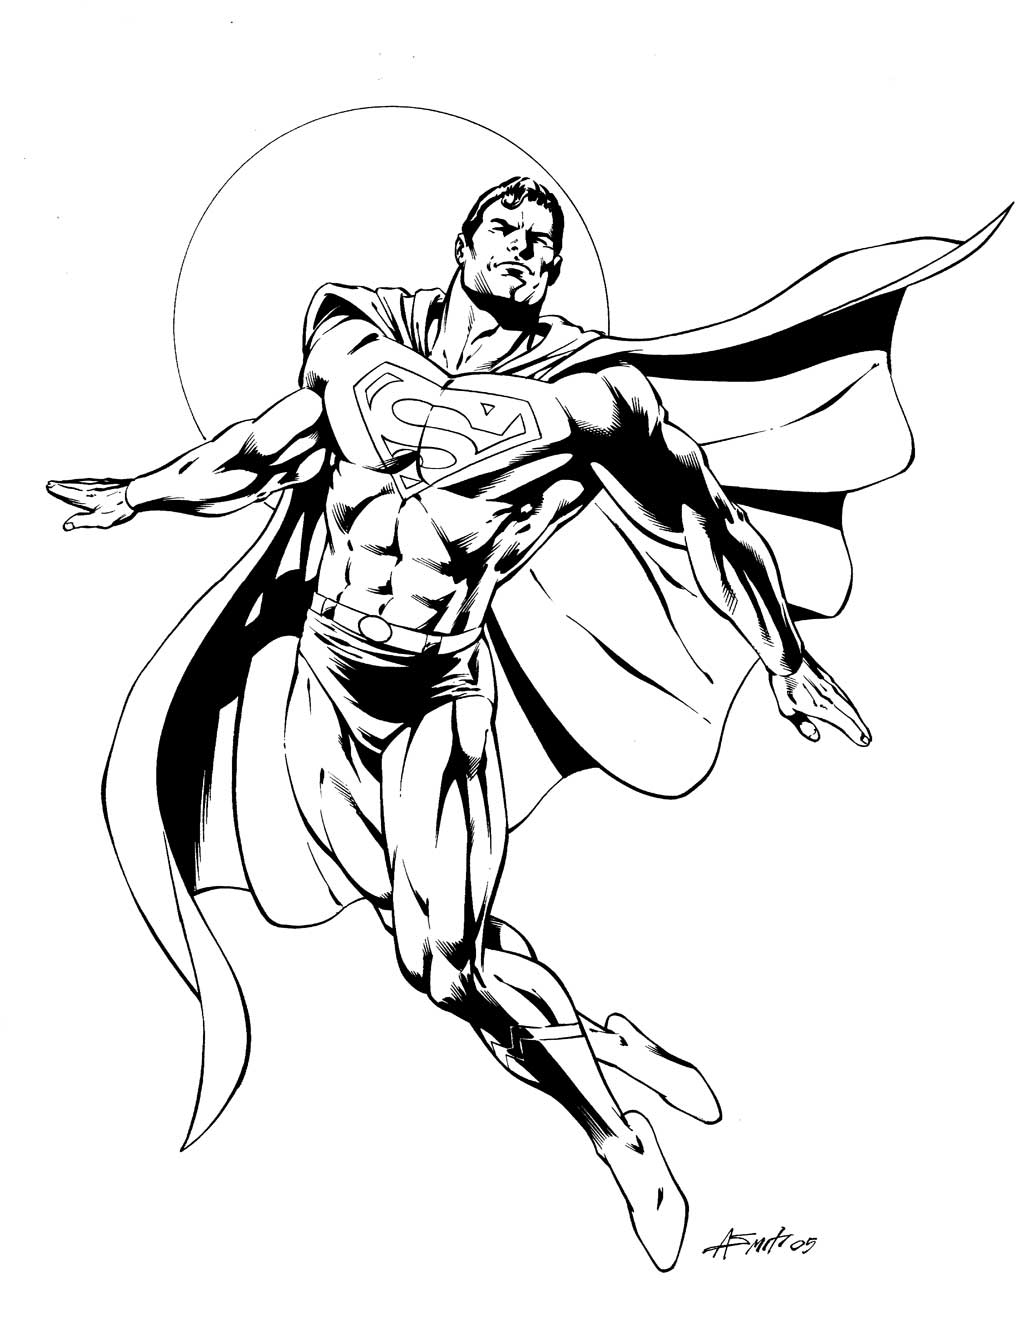 Desenho para colorir do super man o heroi da marvel super for Super man coloring page